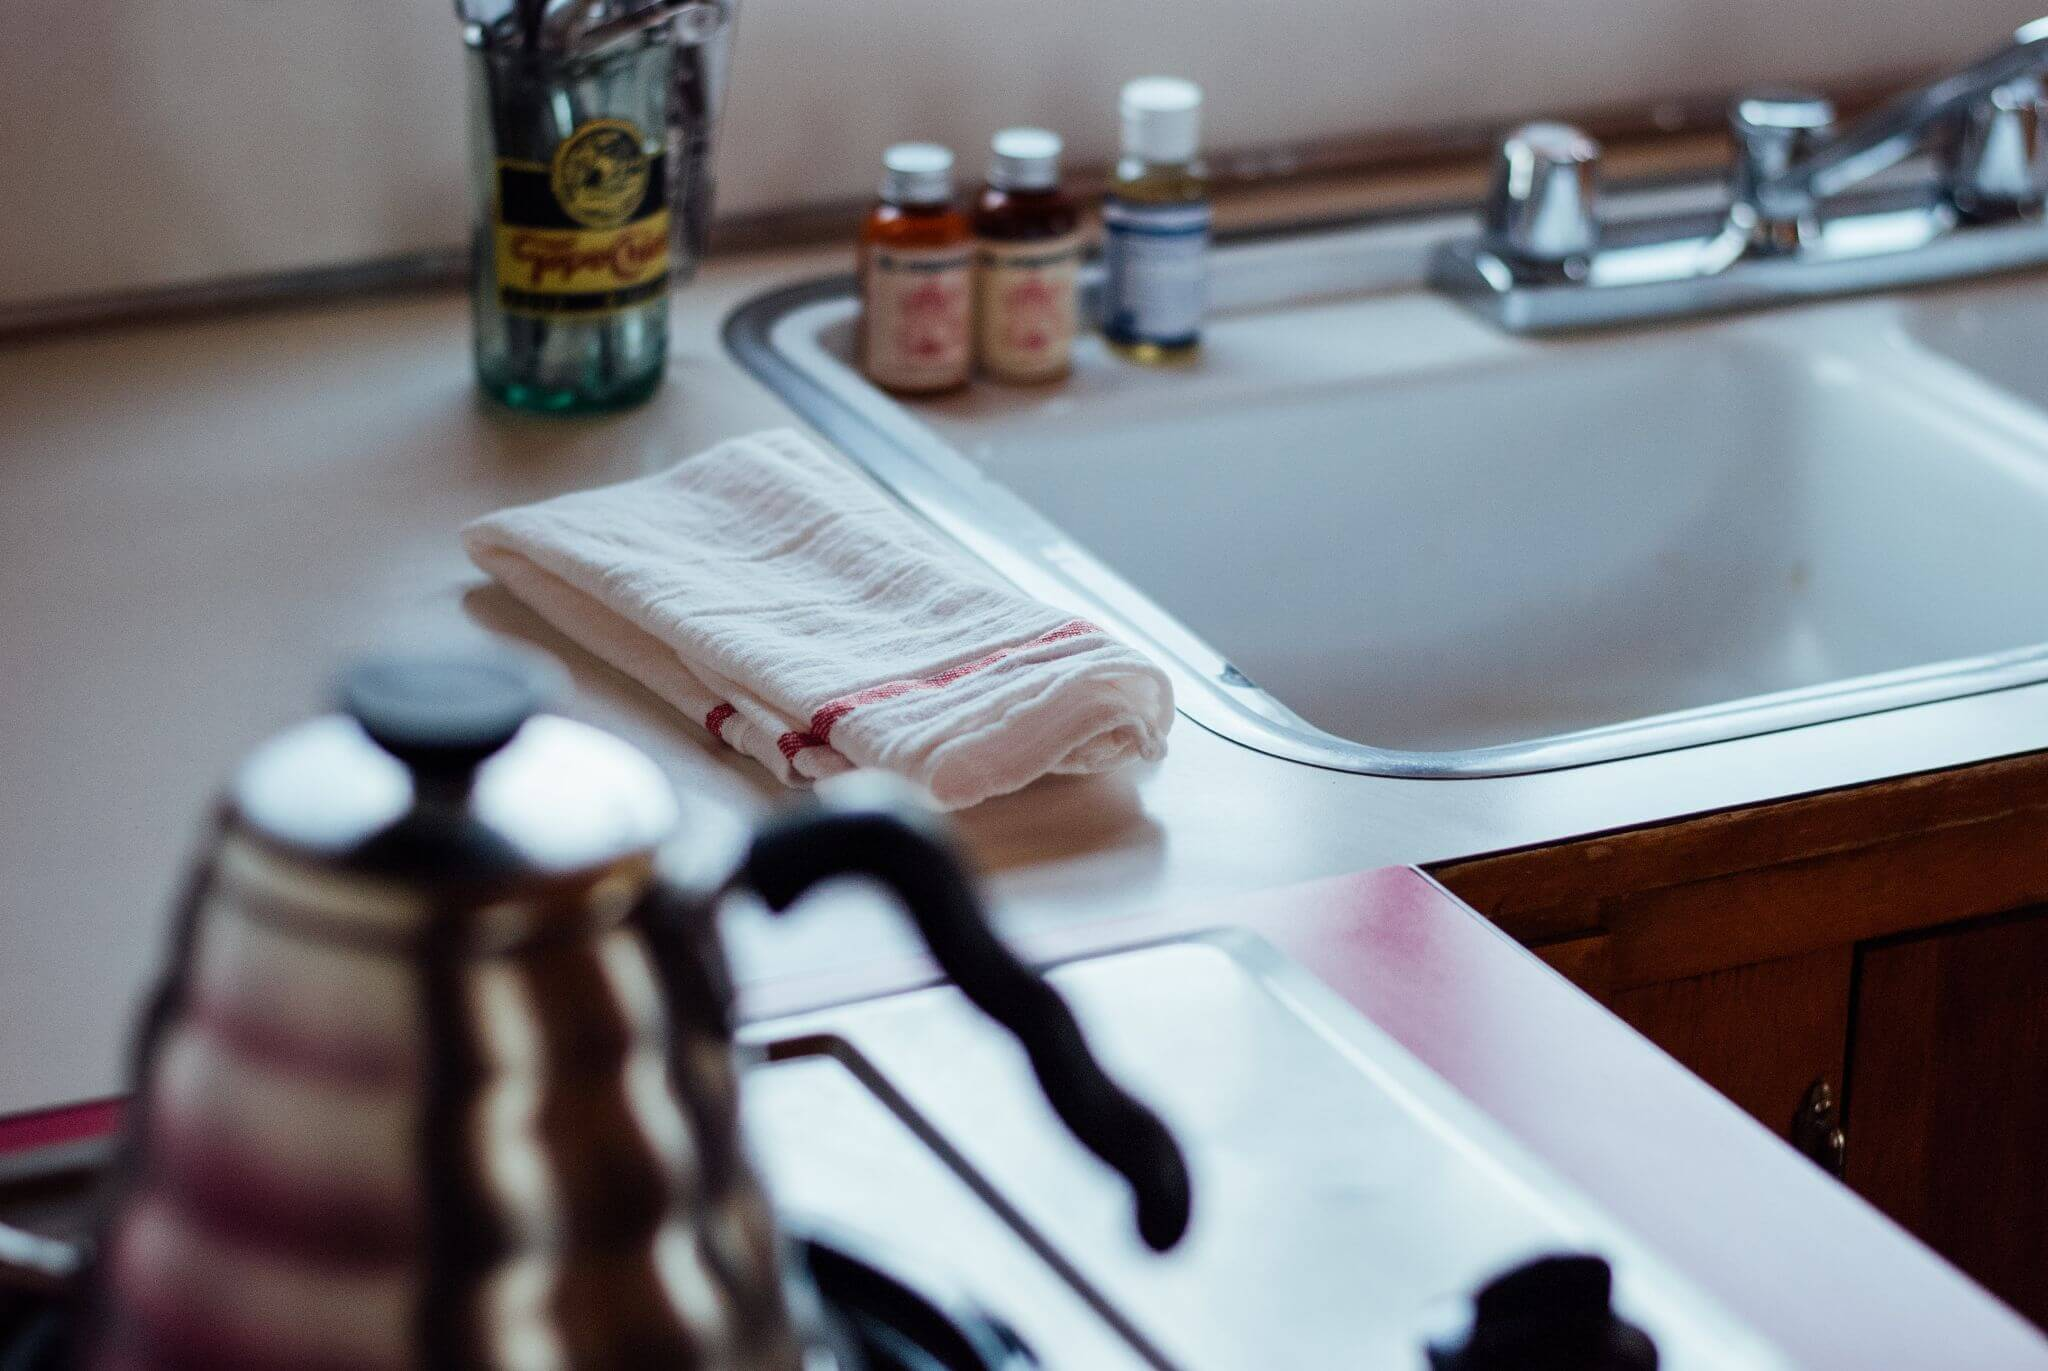 get your home ready for autumn - sparkling kitchen sink